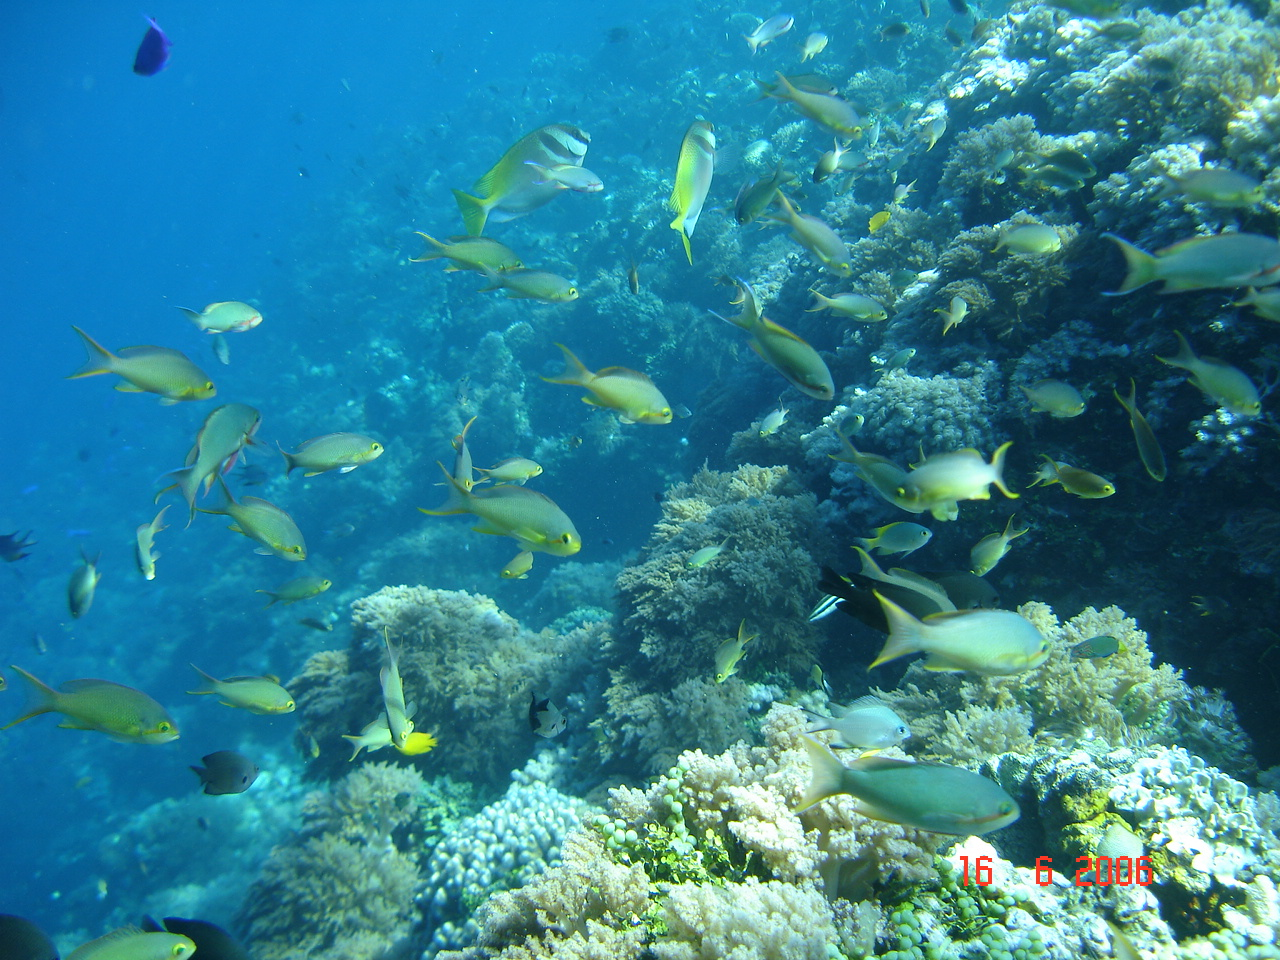 Sagay Marine Reserve Sagay, Exotic Tropical Island Life, Negros Occidental | Just another ...